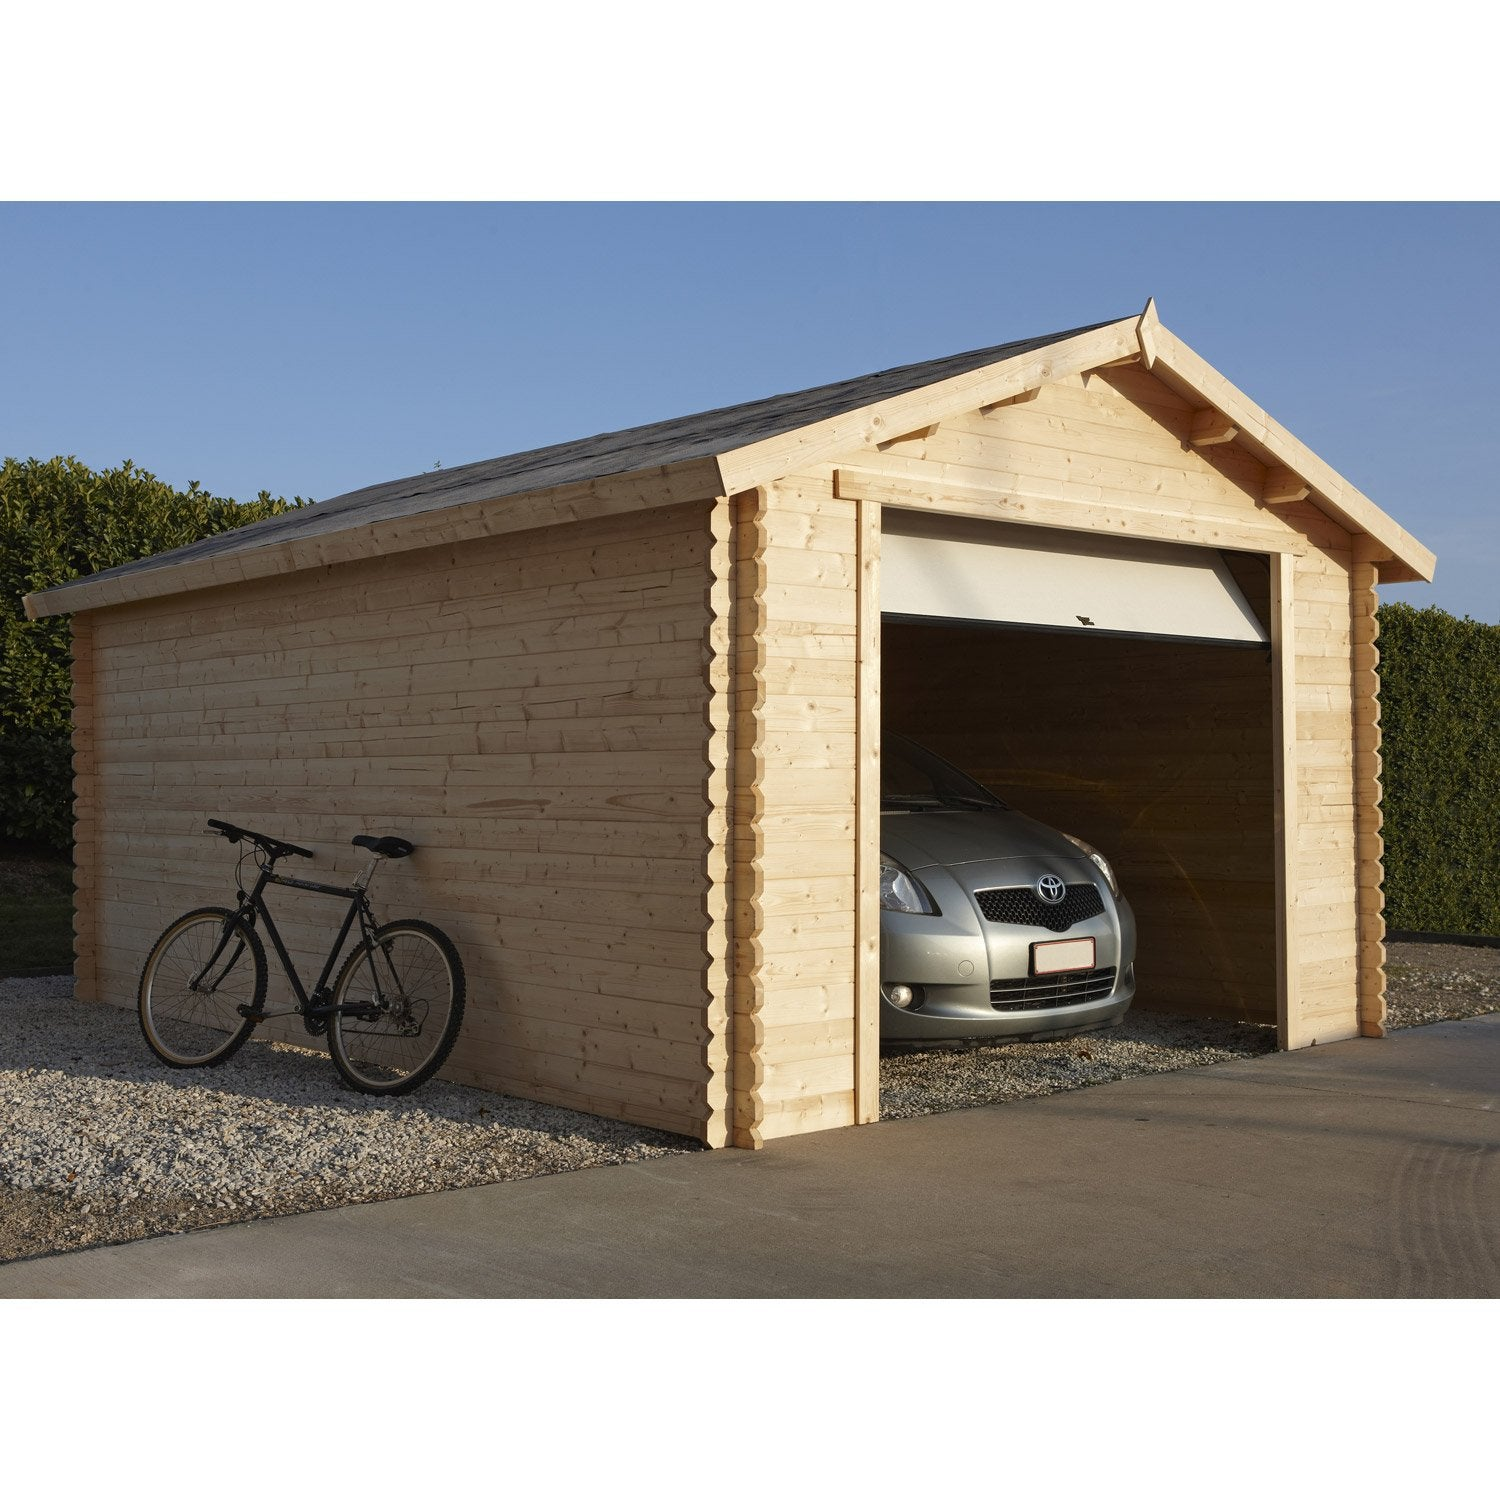 Garage bois nova 1 voiture m leroy merlin for Avis porte de garage sectionnelle leroy merlin